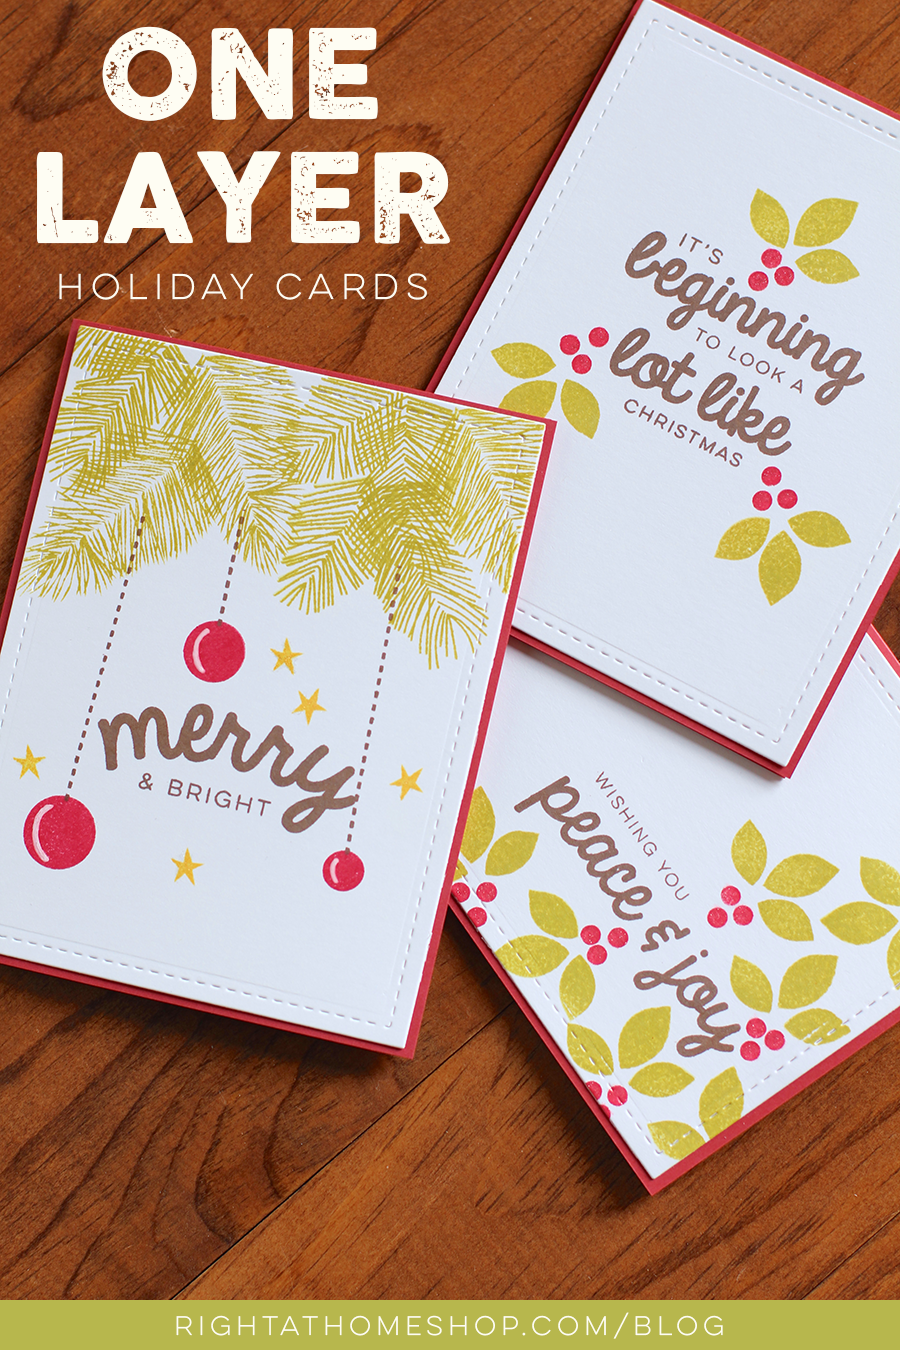 Simple One Layer Holiday Cards // rightathomeshop.com/blog